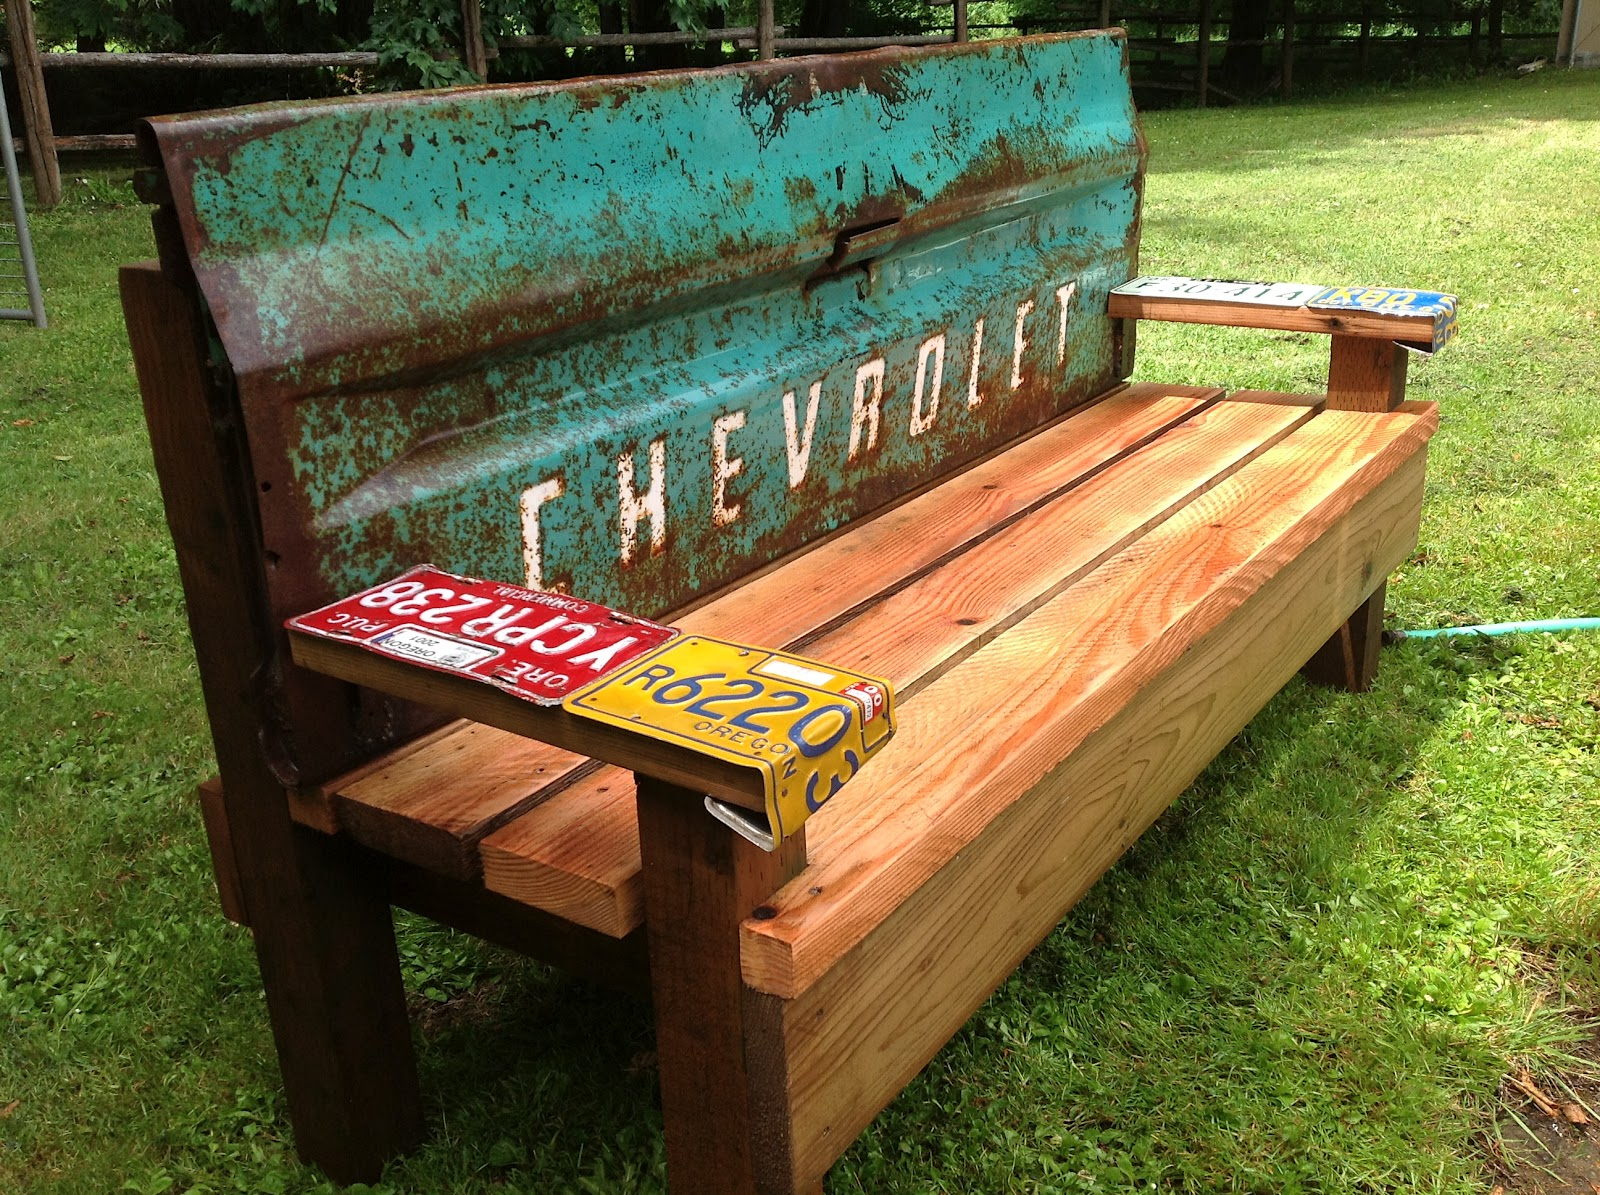 Kathi 39 s garden art rust n stuff team building garden bench with an old tailgate Yard bench